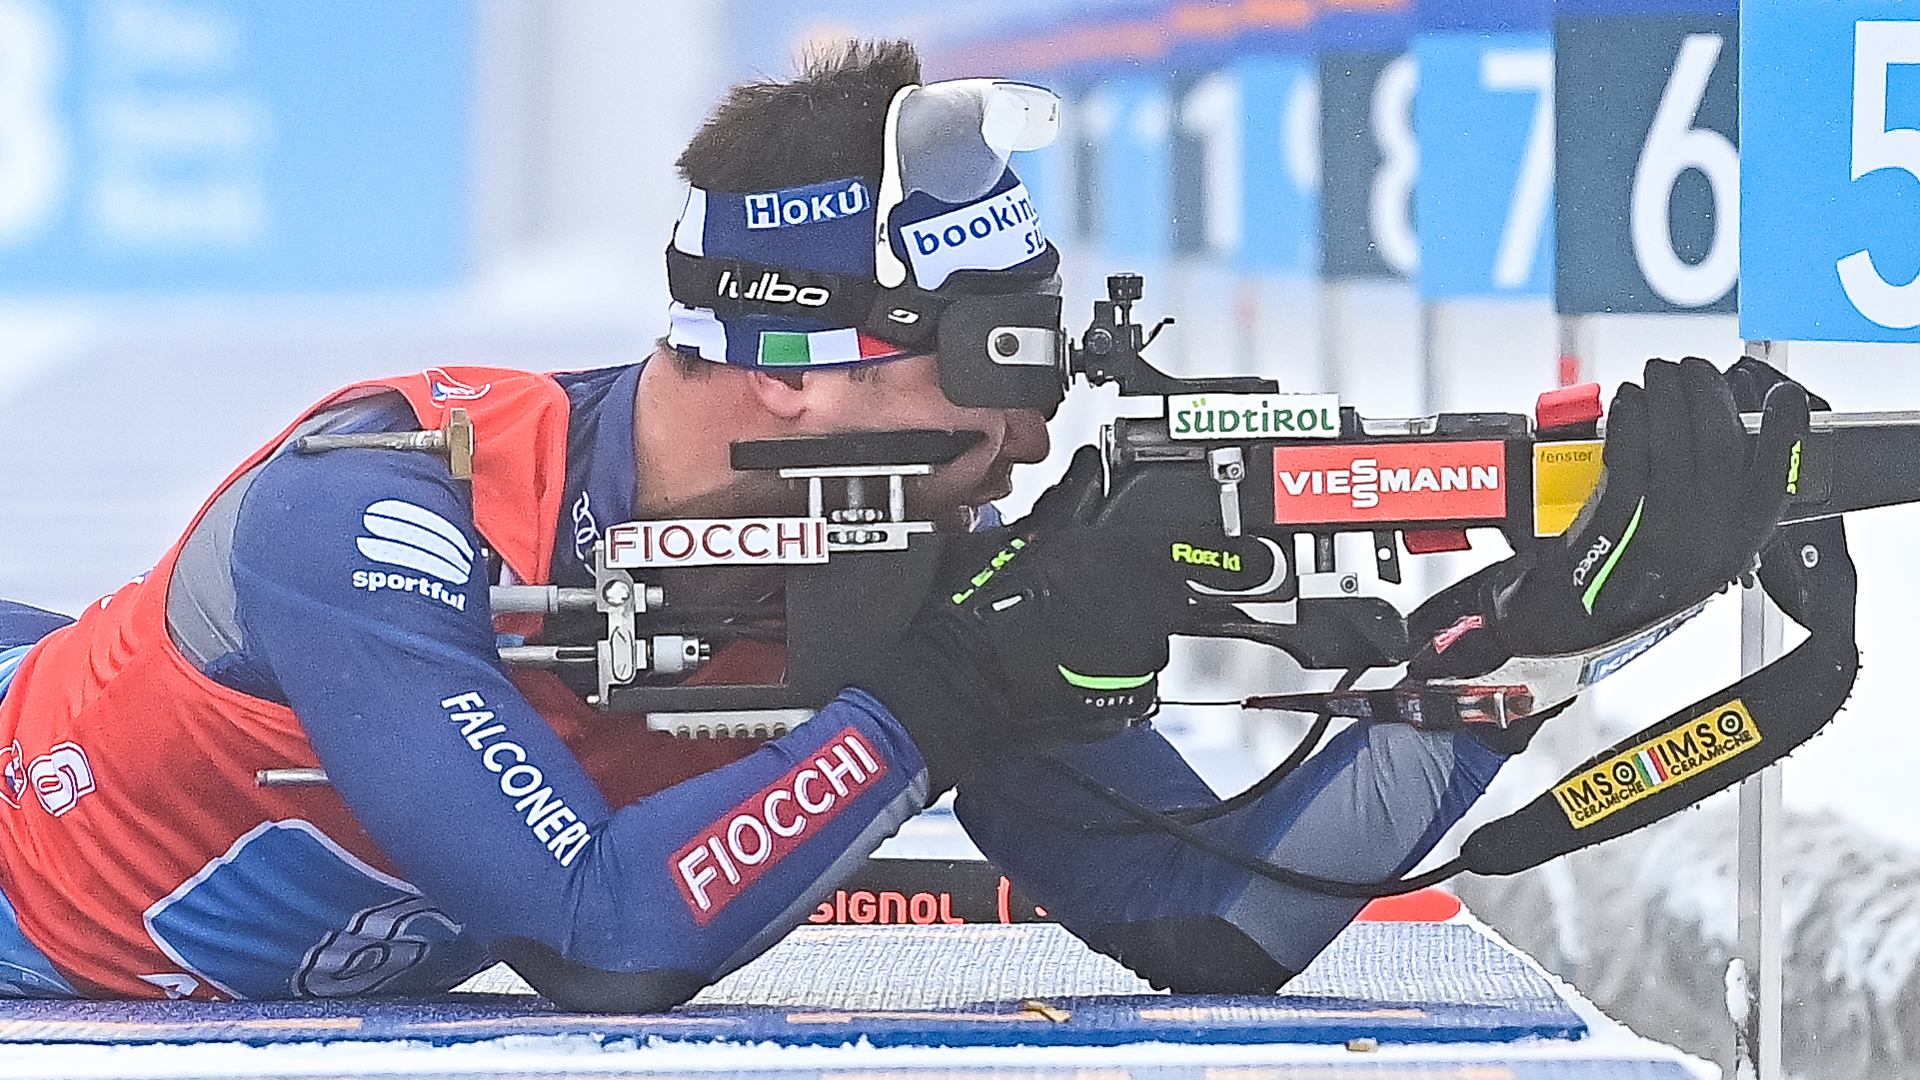 BIATHLON: ONE GOLD, ONE SILVER AND ONE BRONZE MEDAL IN ÖSTERSUND